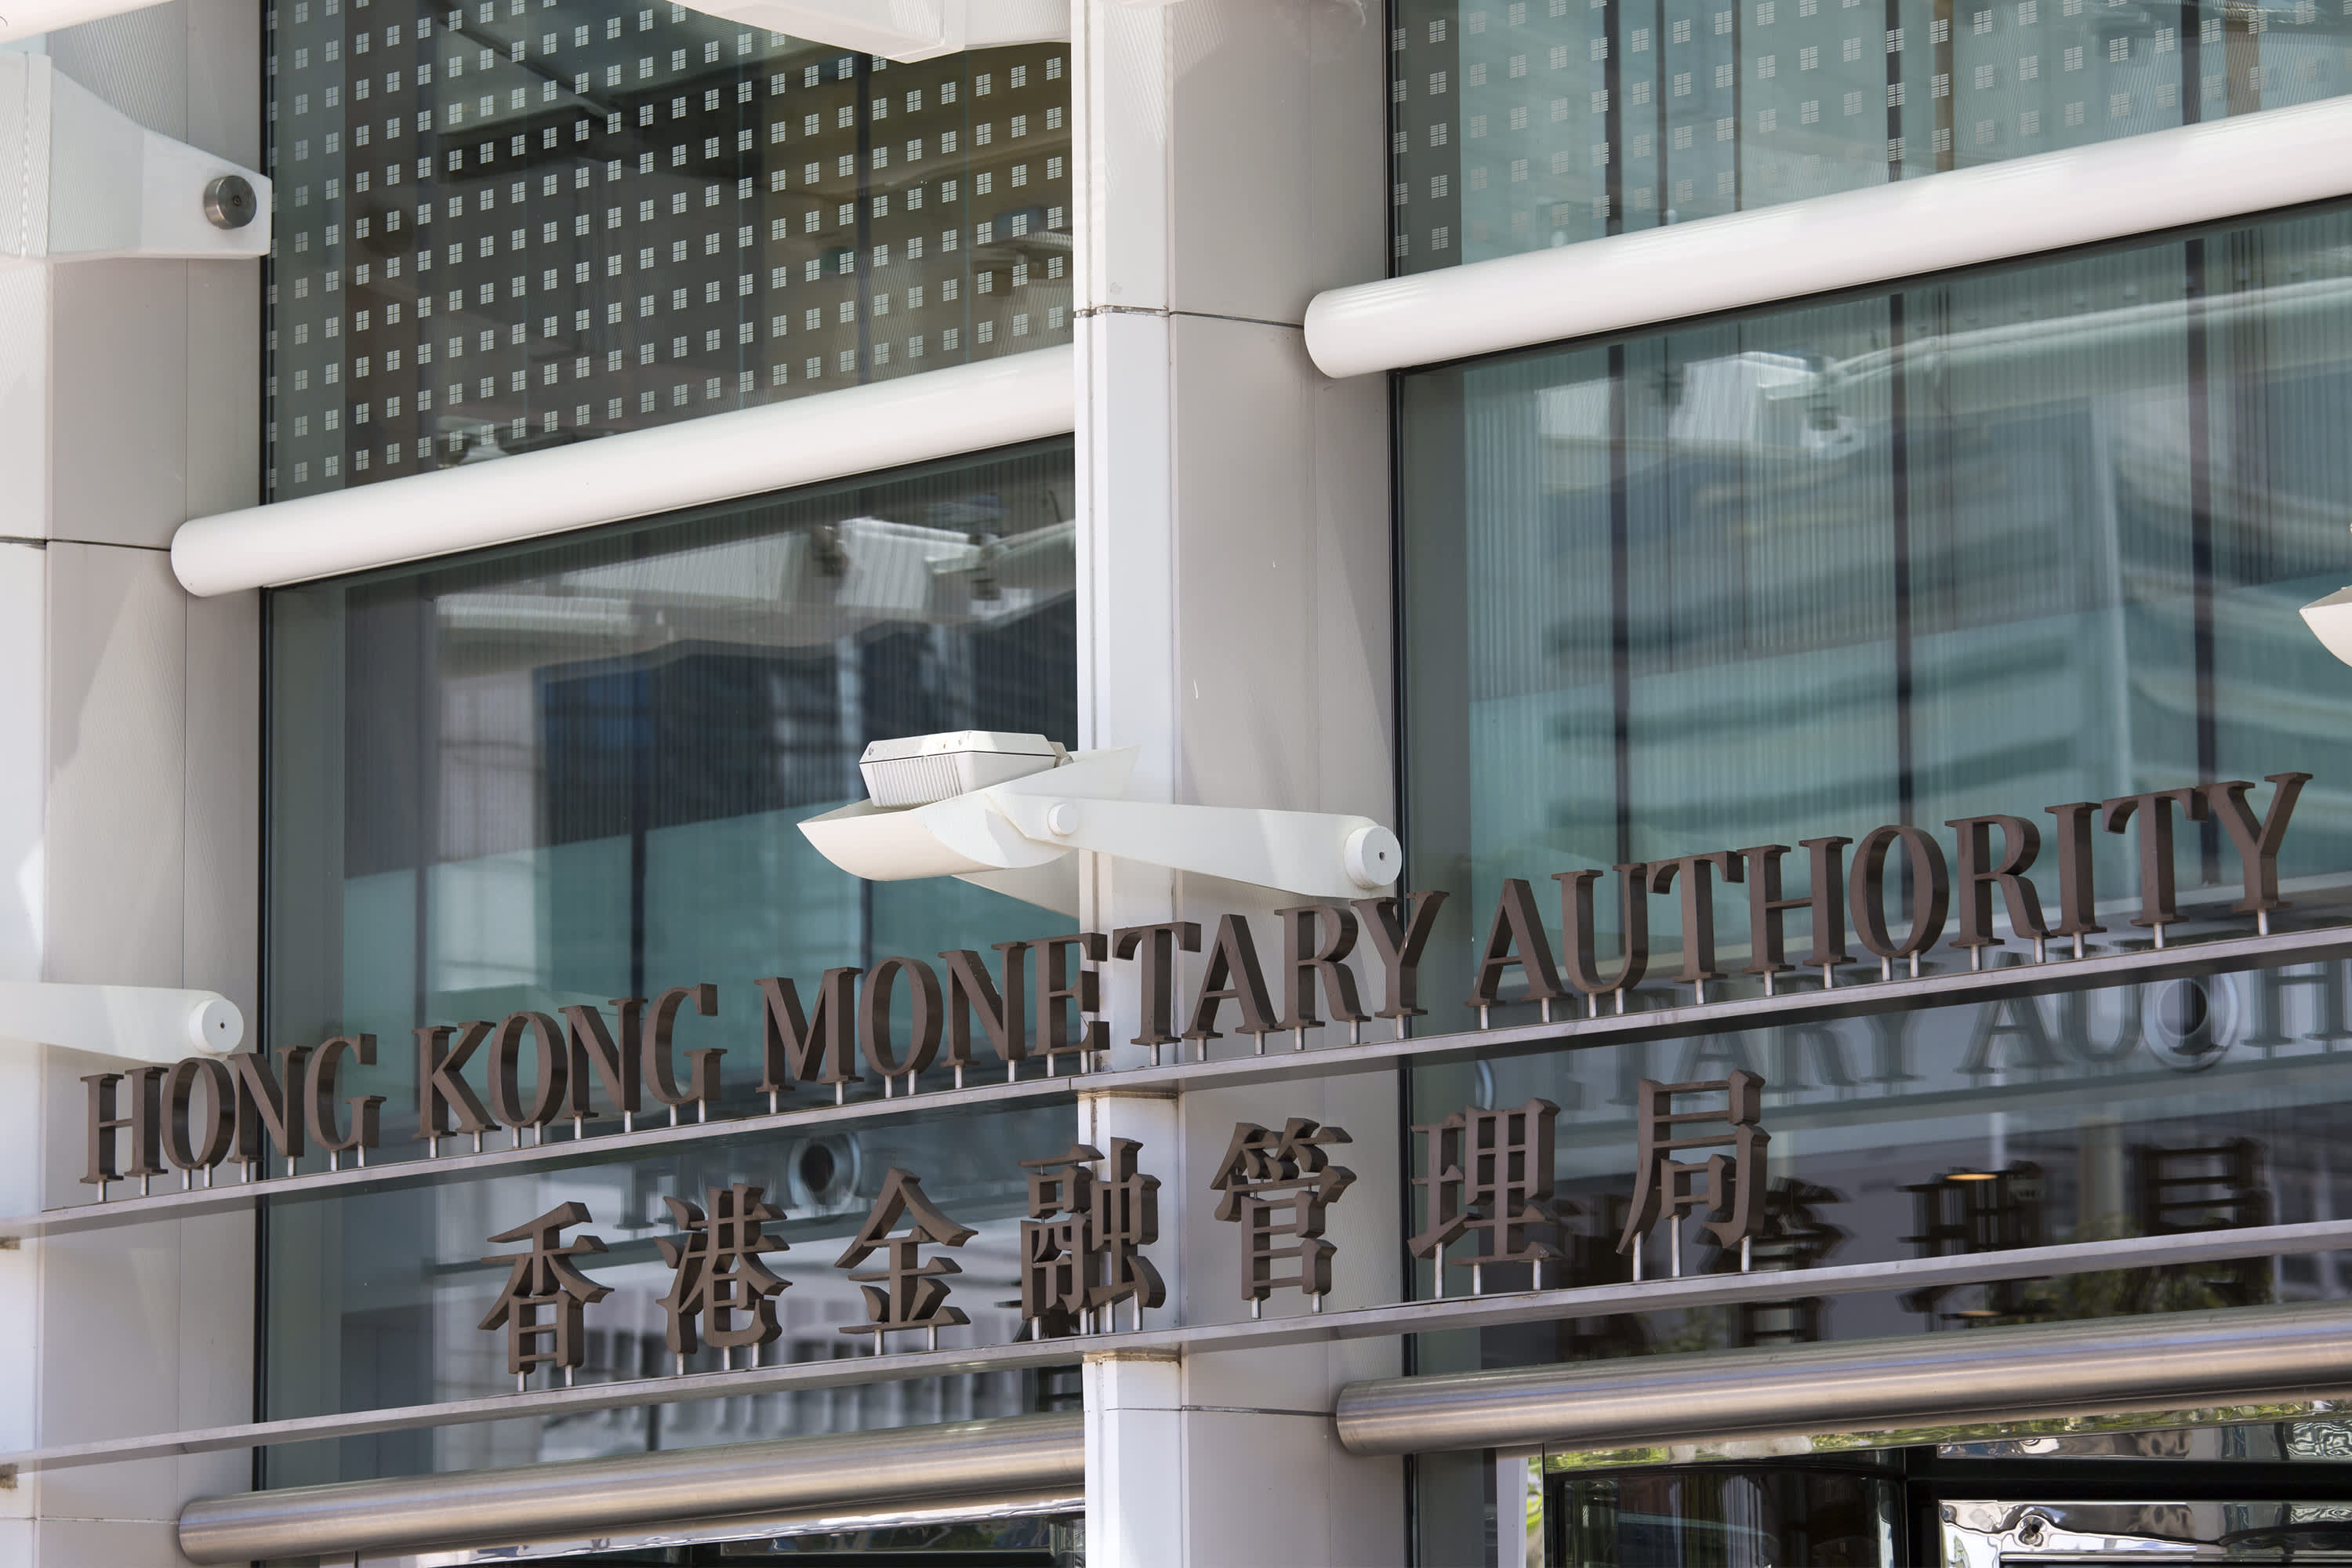 Hong Kong central bank cuts lenders' cash reserves to support economy amid protests